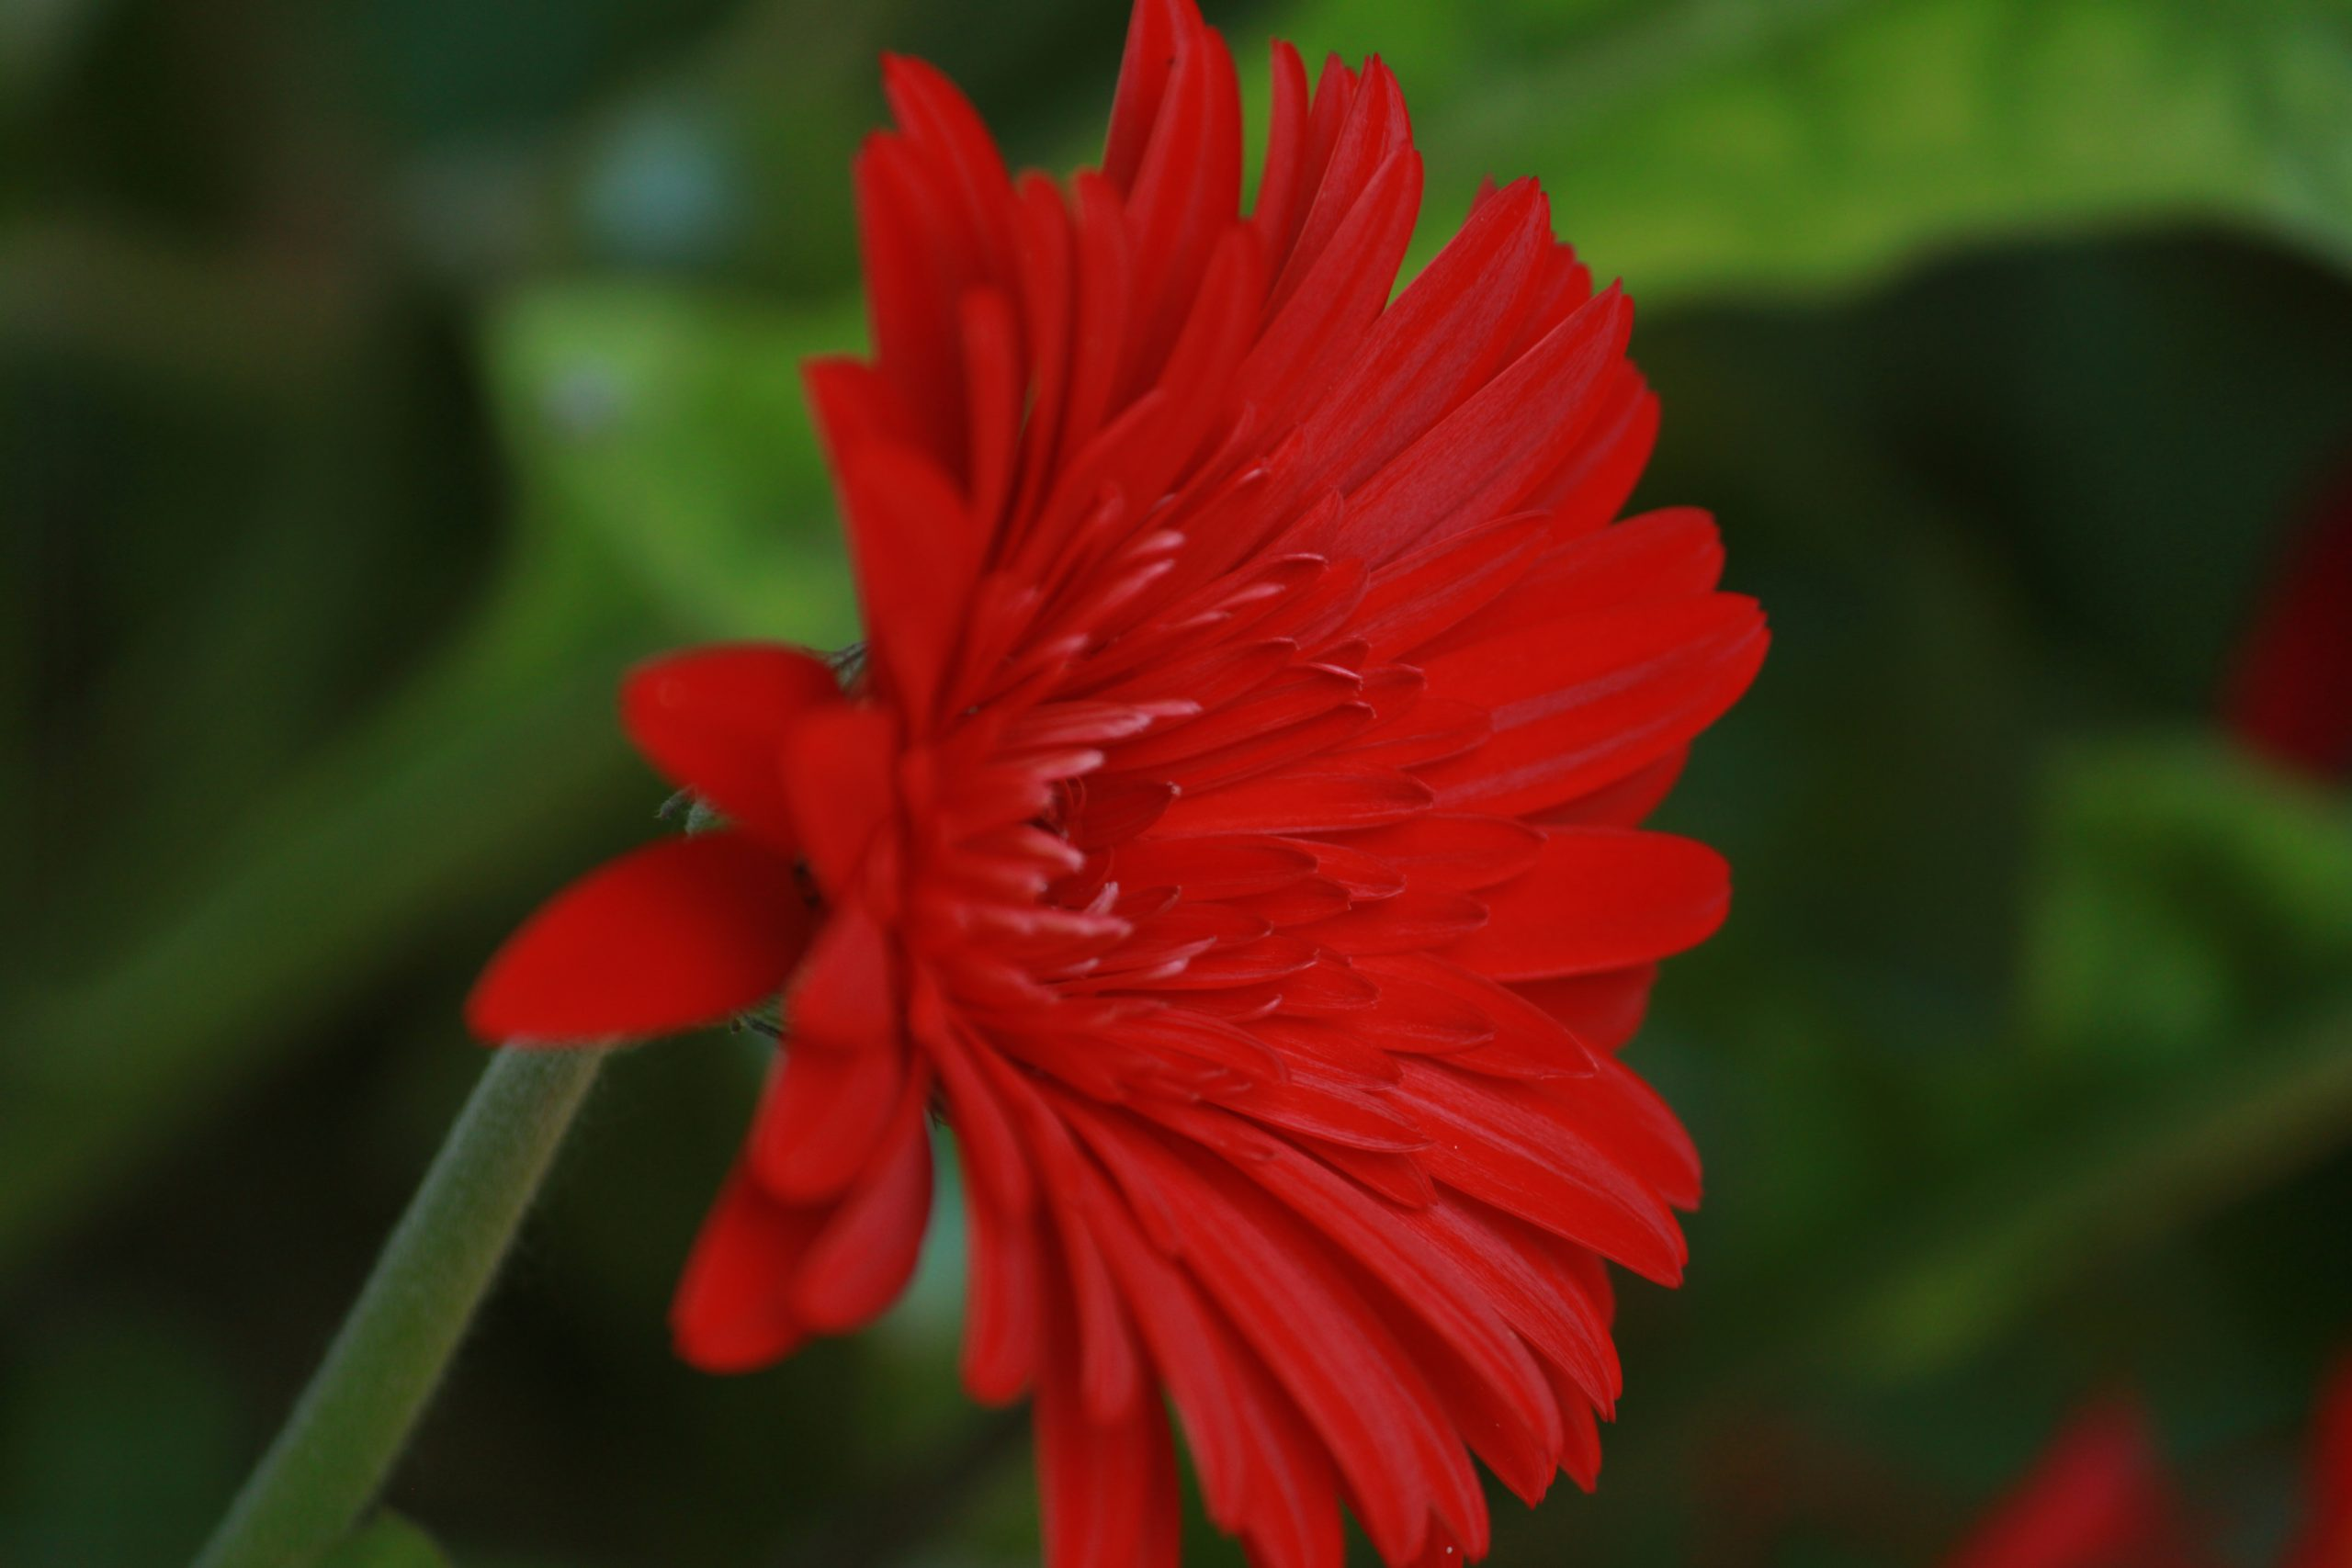 Blooming Red Daisy